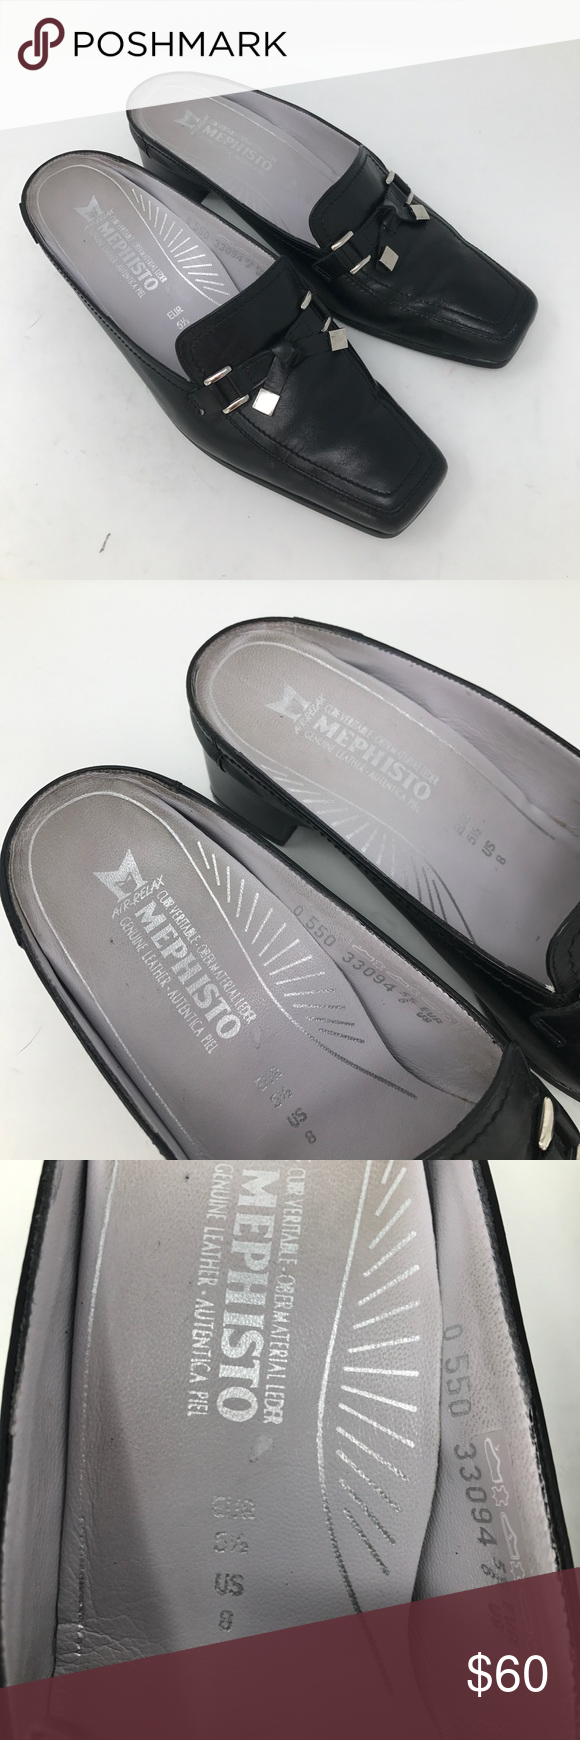 Mephisto Air Relax Black Leather Mules Euro Shoes Mephisto